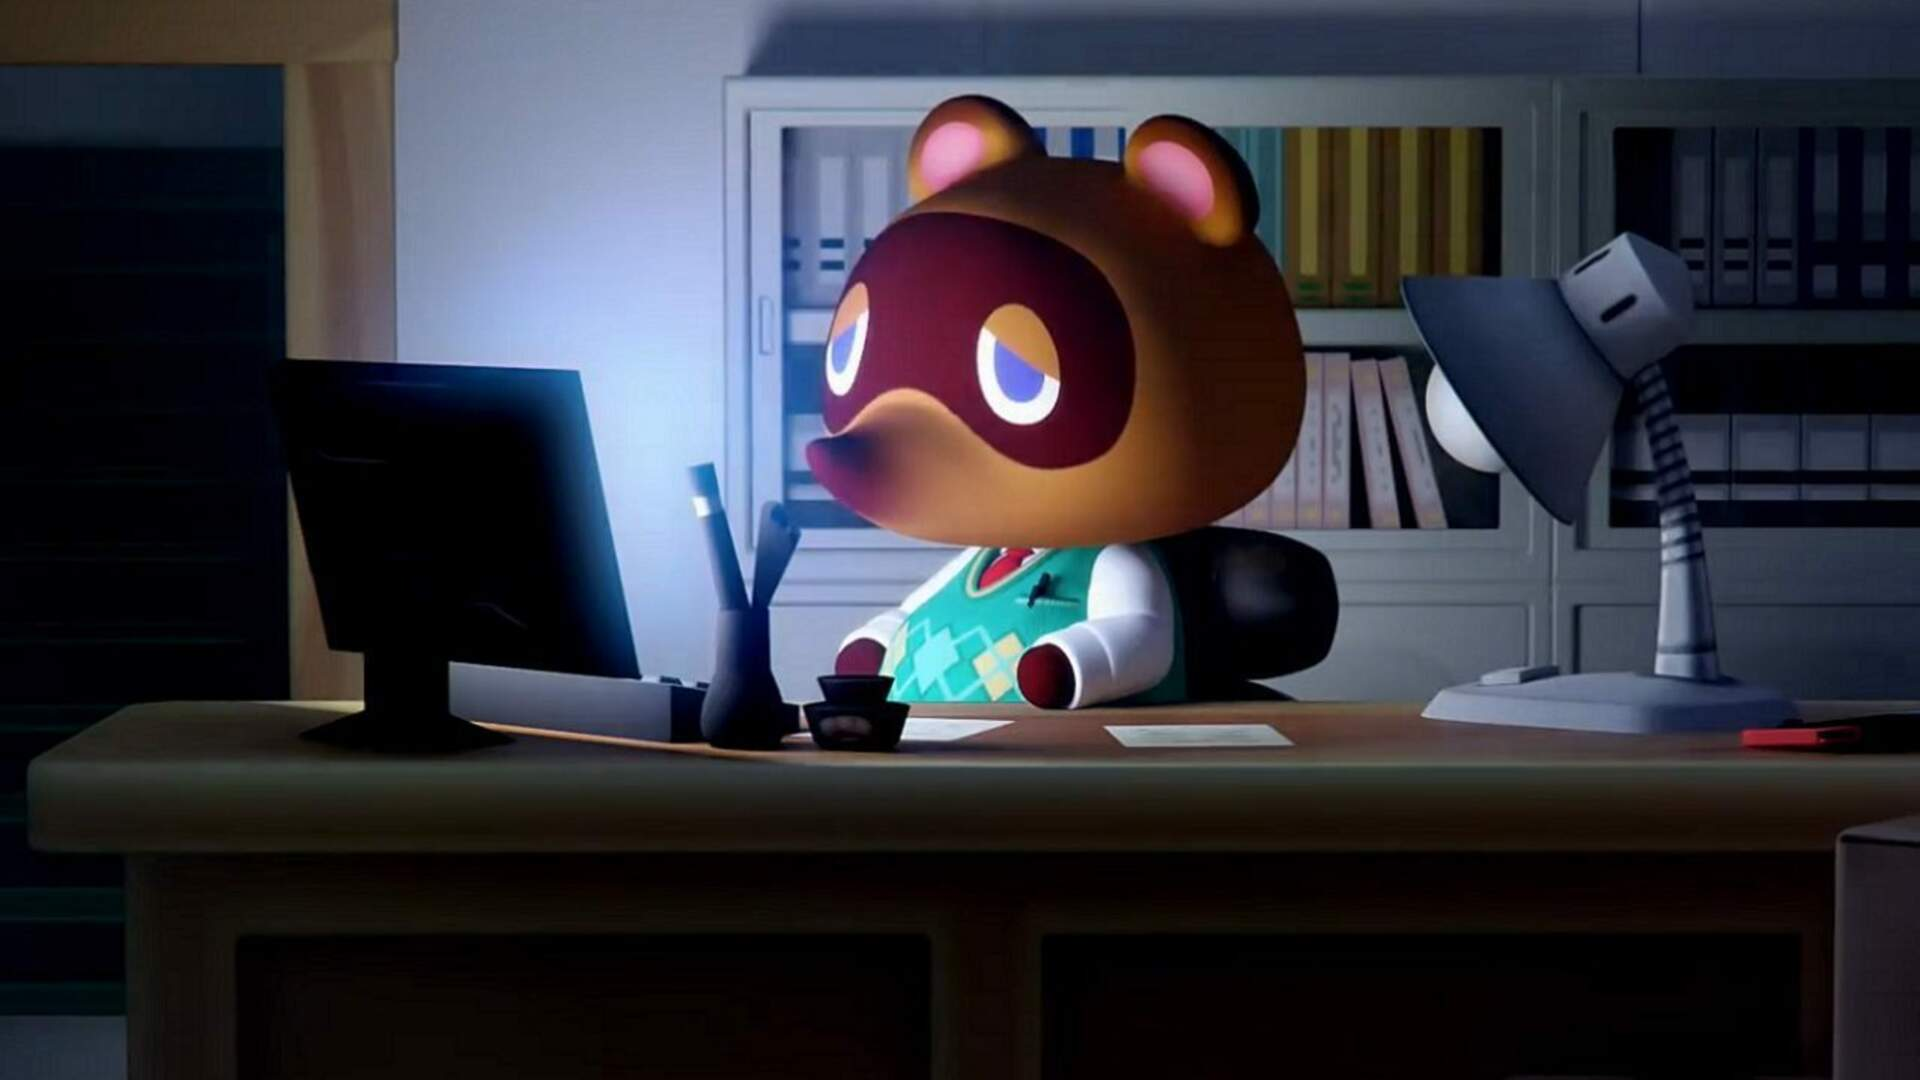 Storylines to Watch Heading Into E3 2019, From Streaming to Next-Gen Consoles